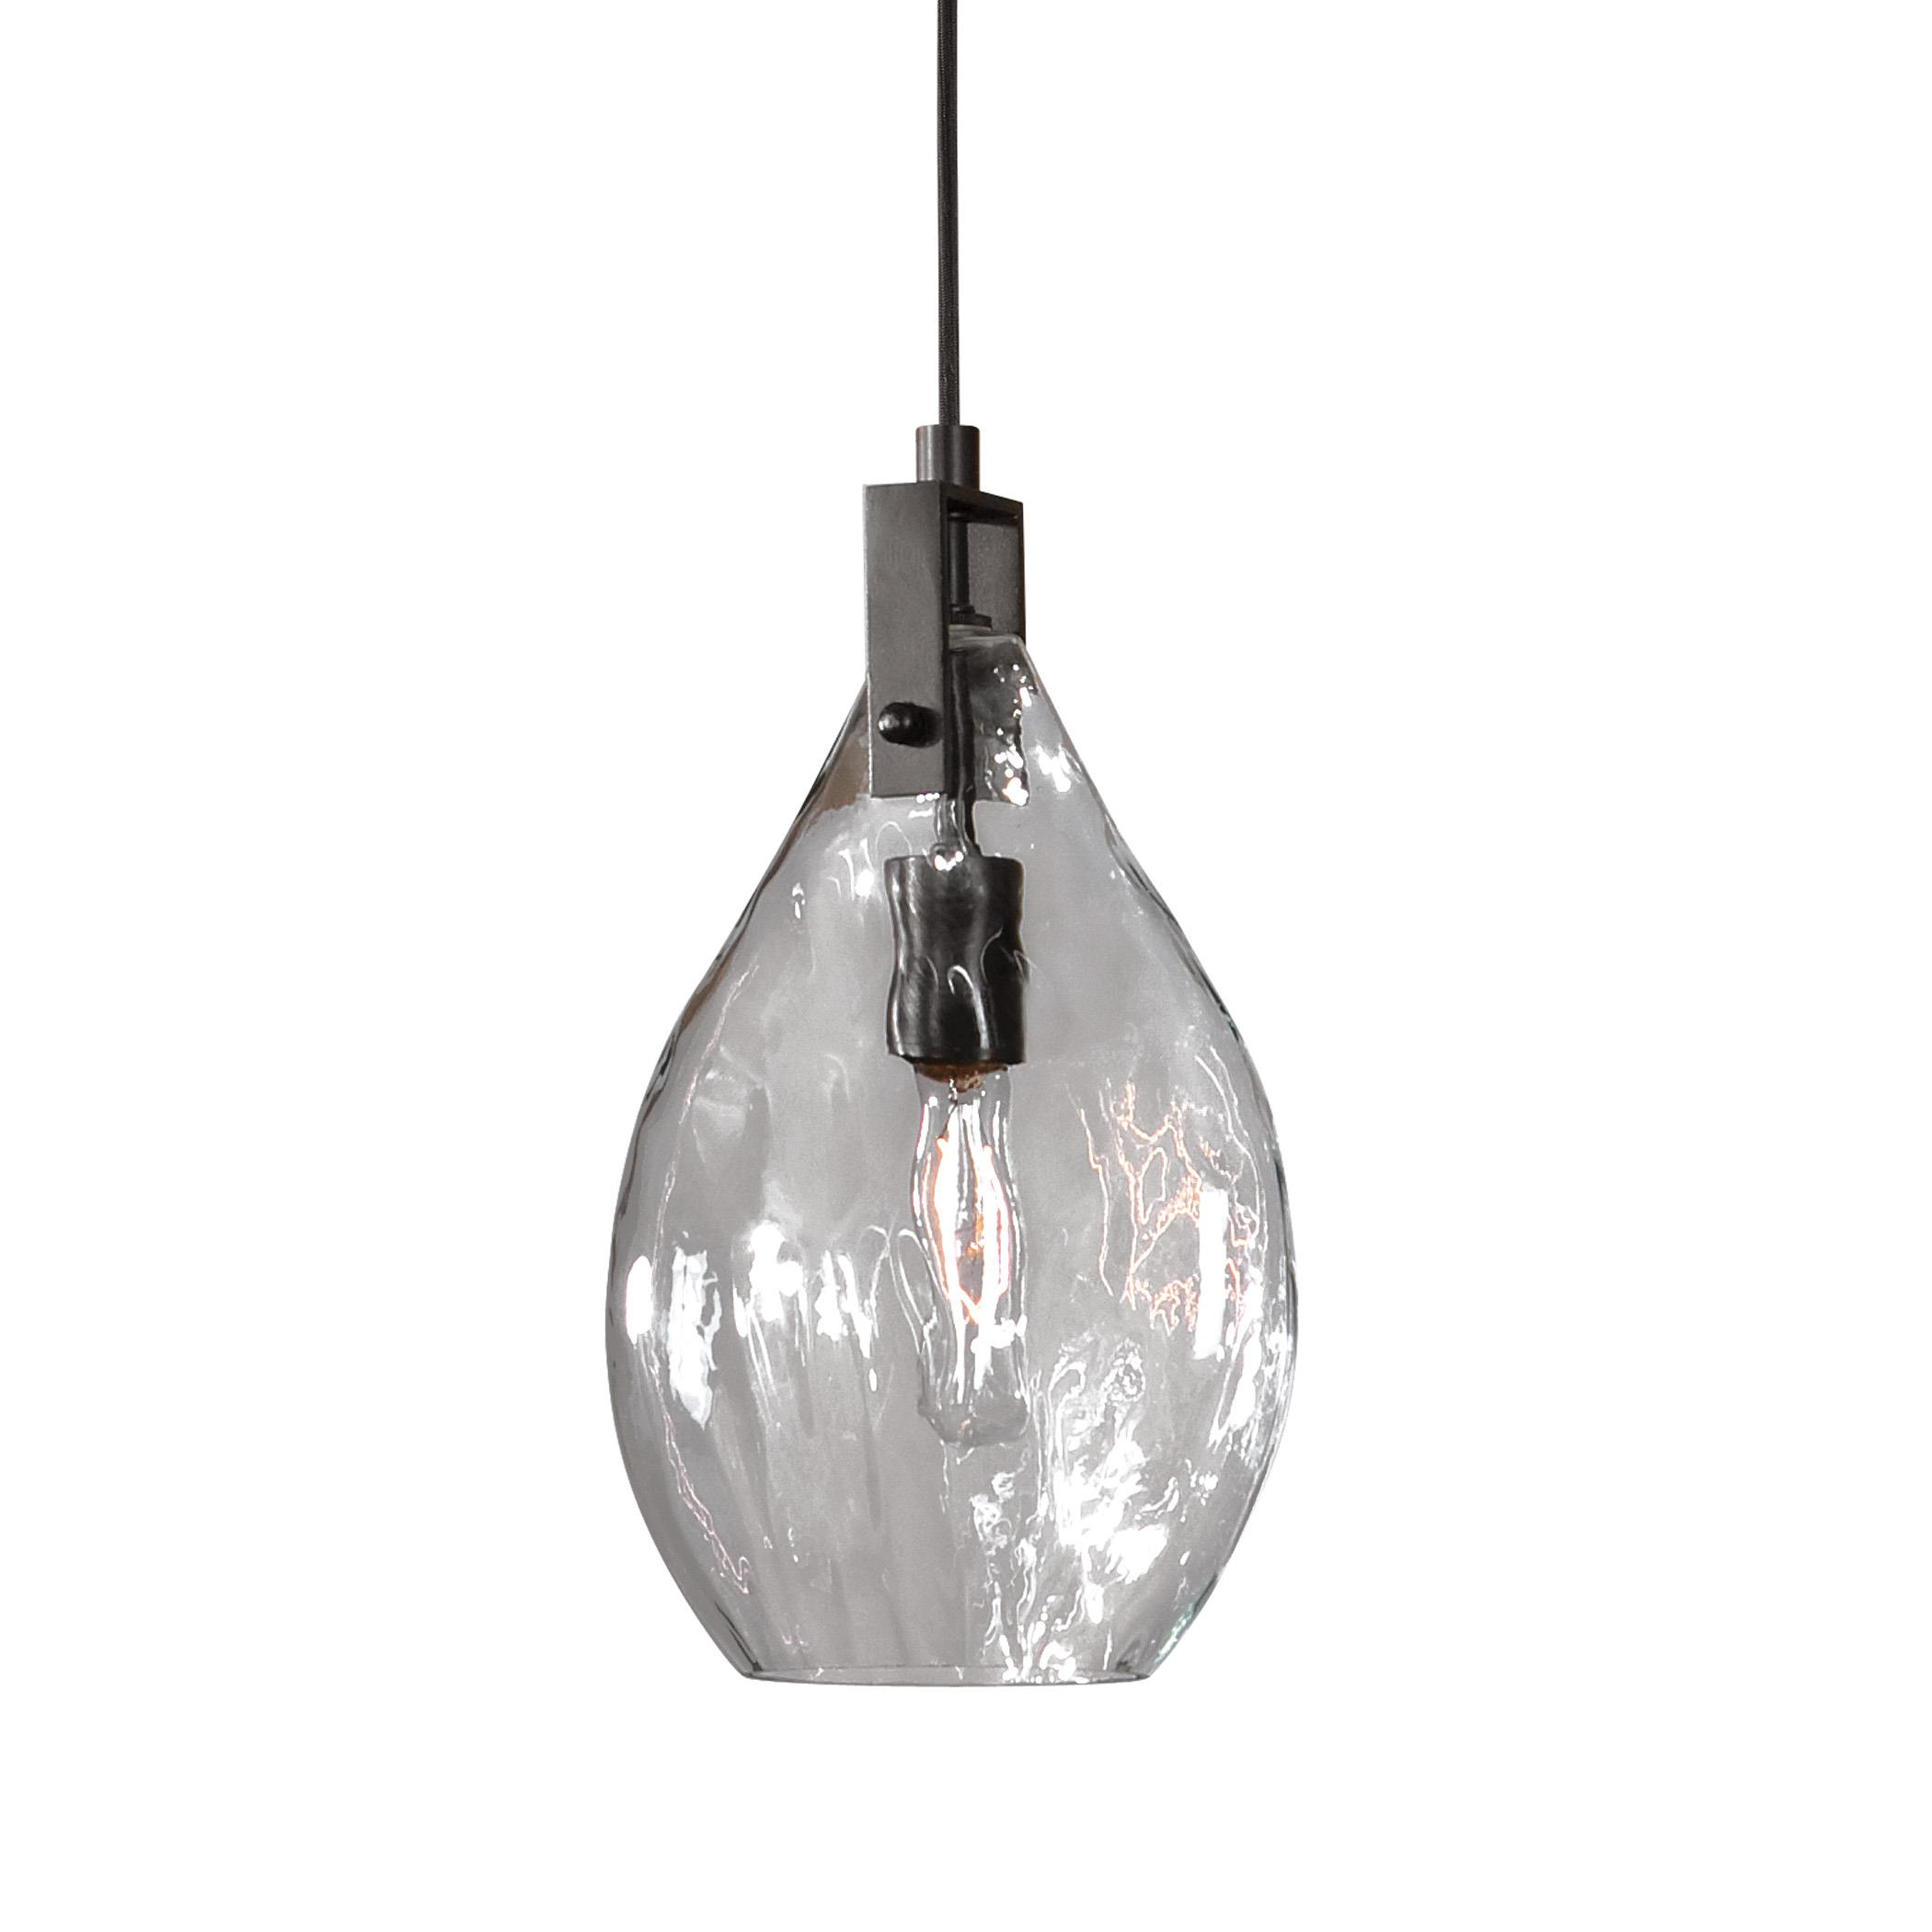 Uttermost Lighting Fixtures Campester 1 Light Watered Glass Mini Pendant - Item Number: 22049